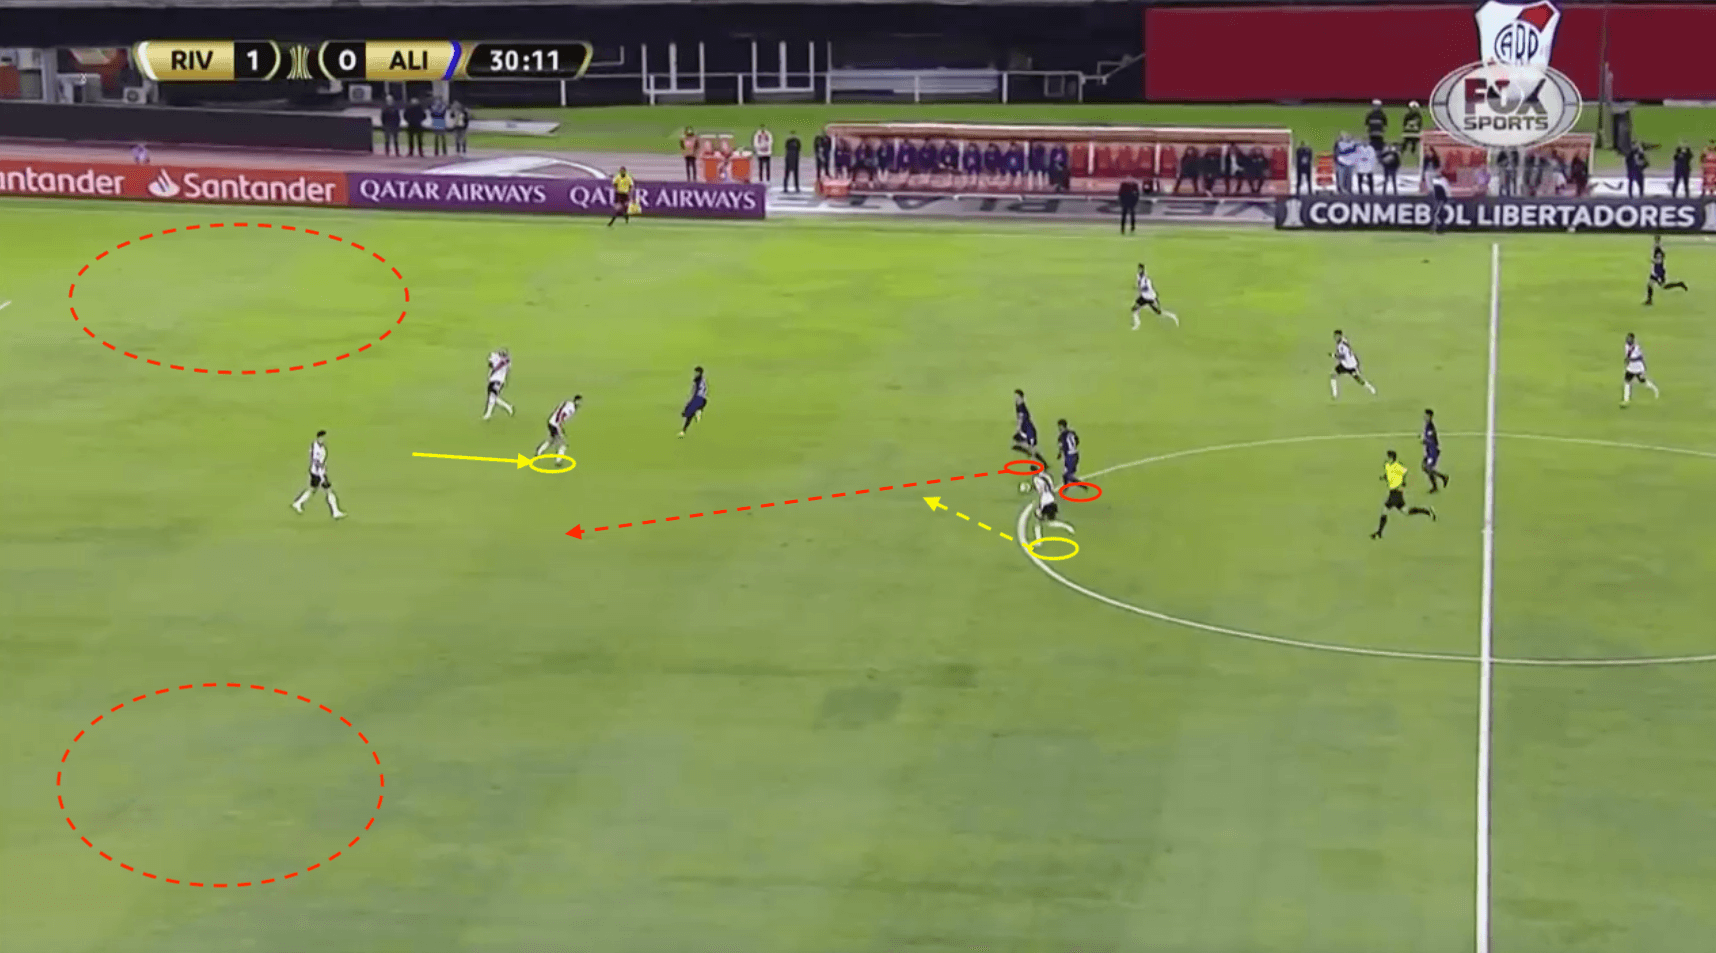 Copa Libertadores 2018/19 River Plate Alianza Lima Analysis Tactical Analysis